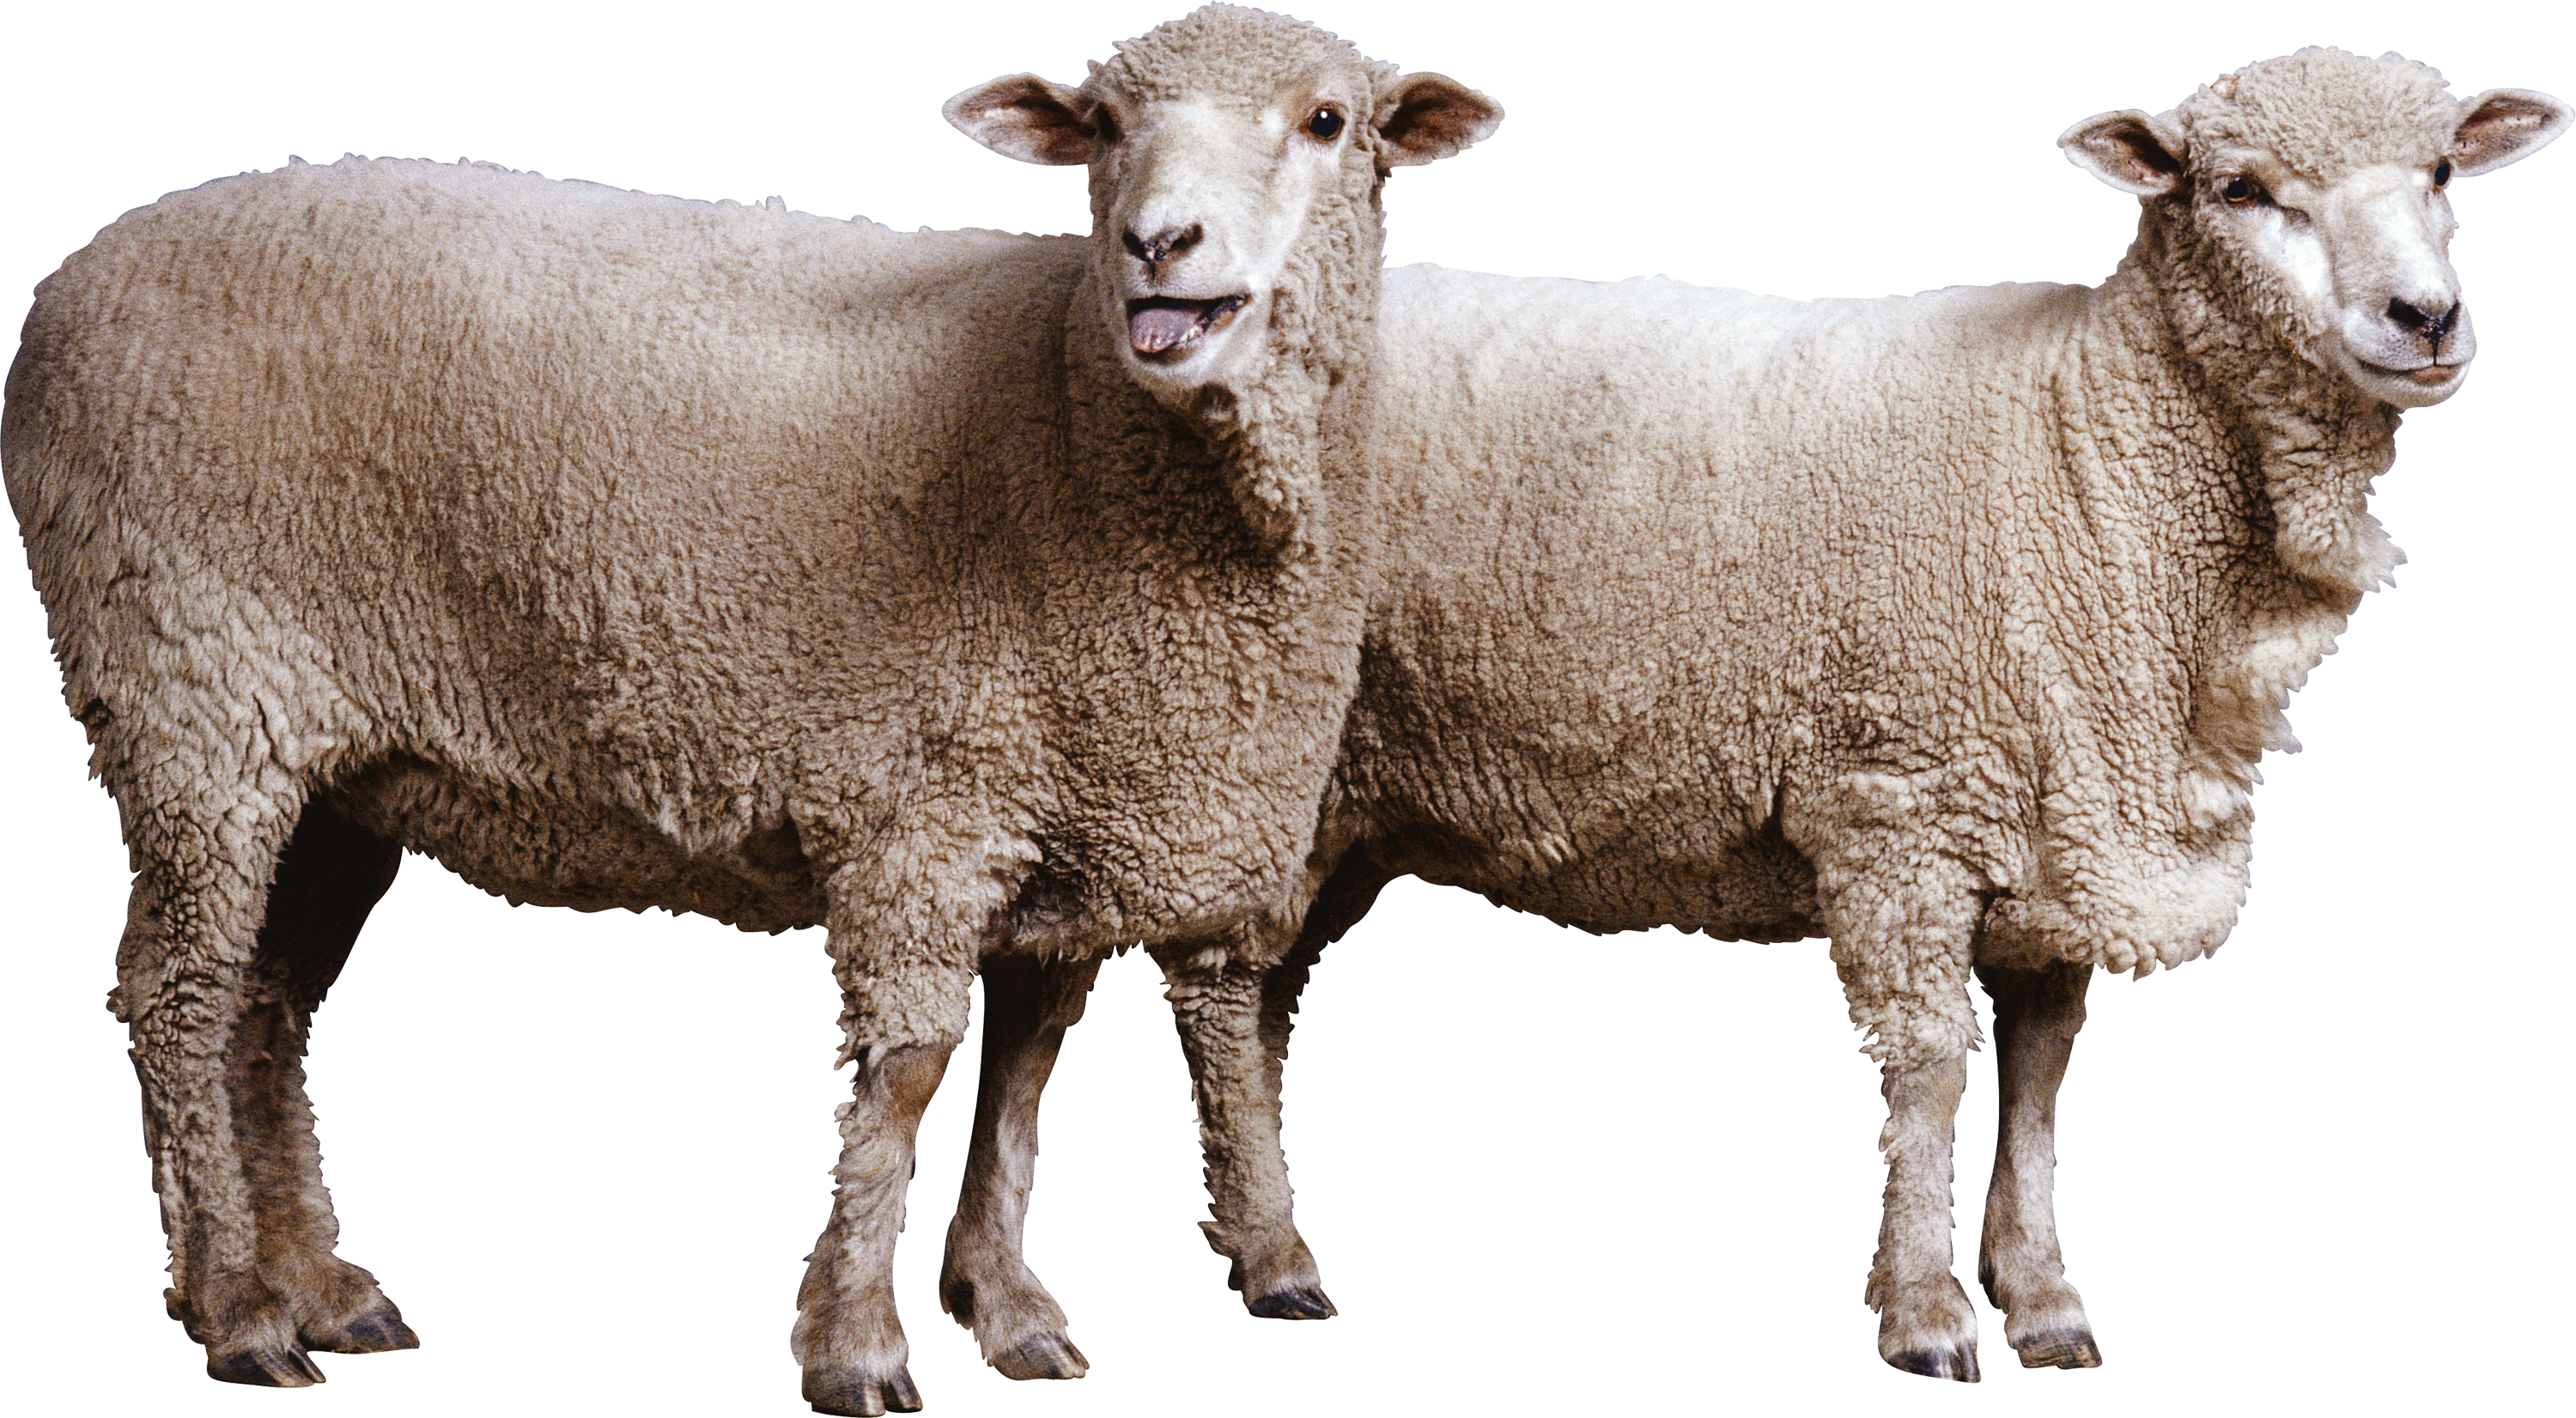 Lamb clipart vertebrate. Two white sheep isolated